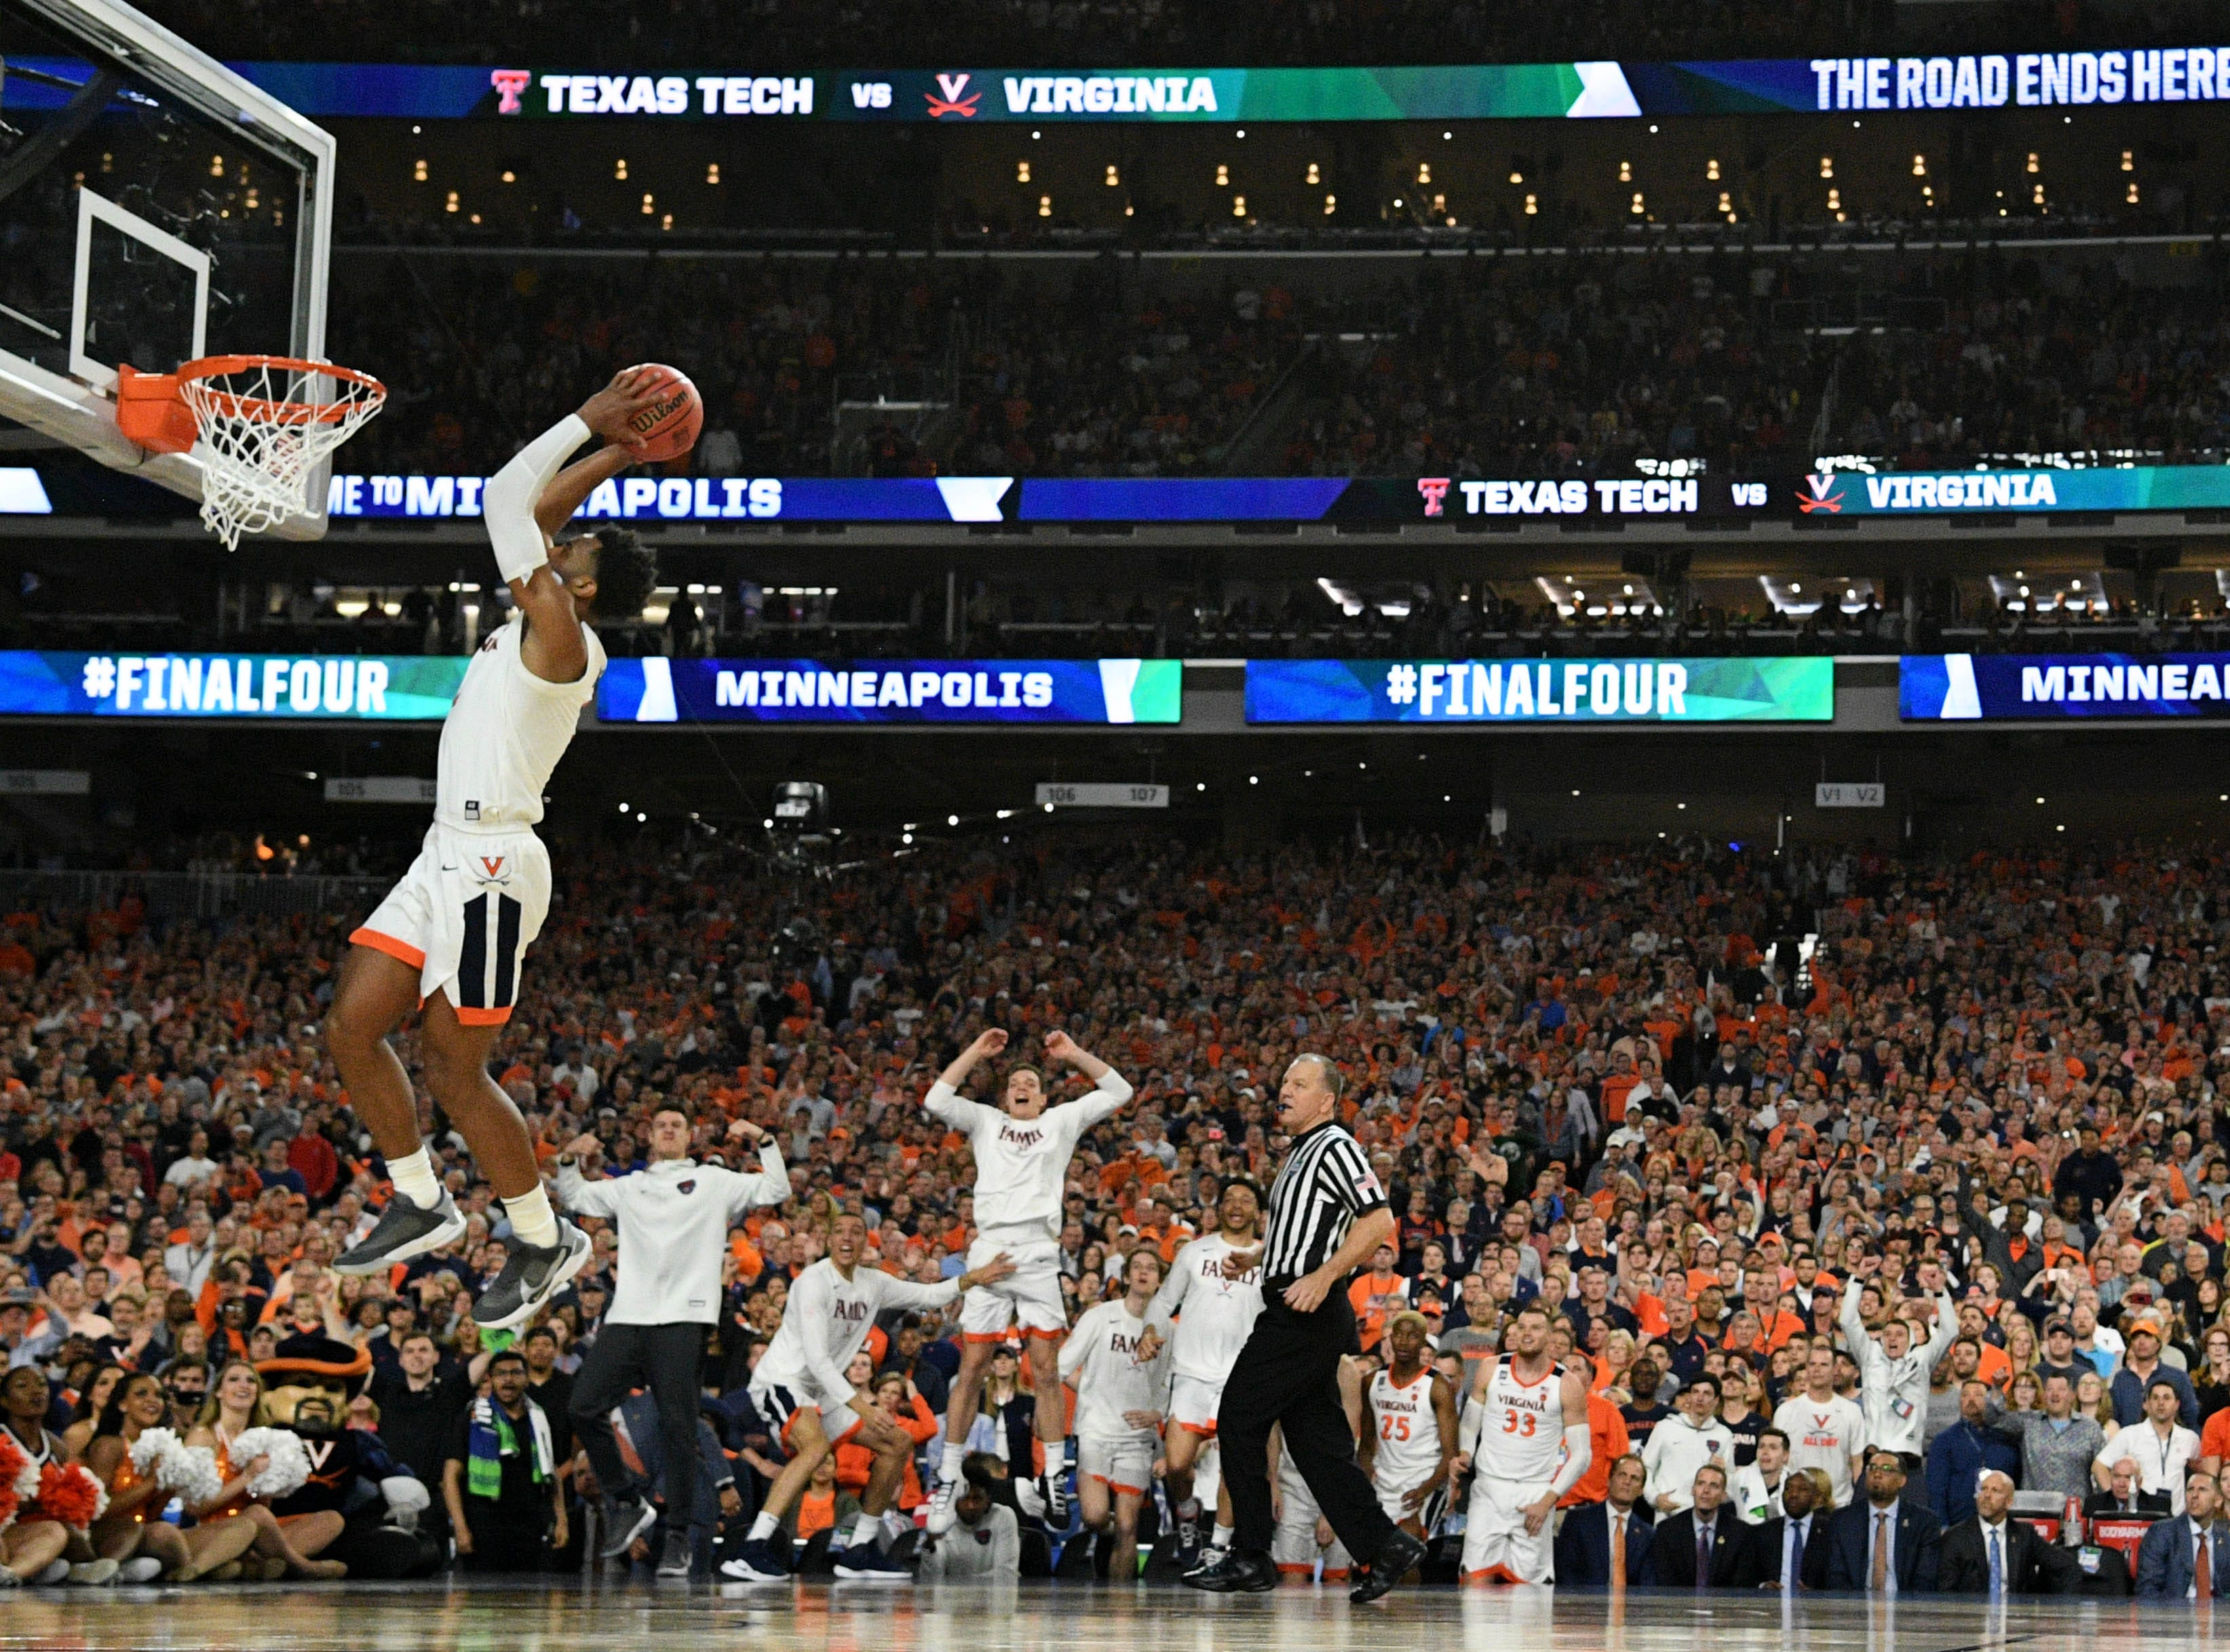 Apr 8, 2019; Minneapolis, MN, USA; Virginia Cavaliers guard Braxton Key (2) dunks the ball against the Texas Tech Red Raiders in overtime in the championship game of the 2019 men's Final Four at US Bank Stadium. Mandatory Credit: Robert Deutsch-USA TODAY Sports